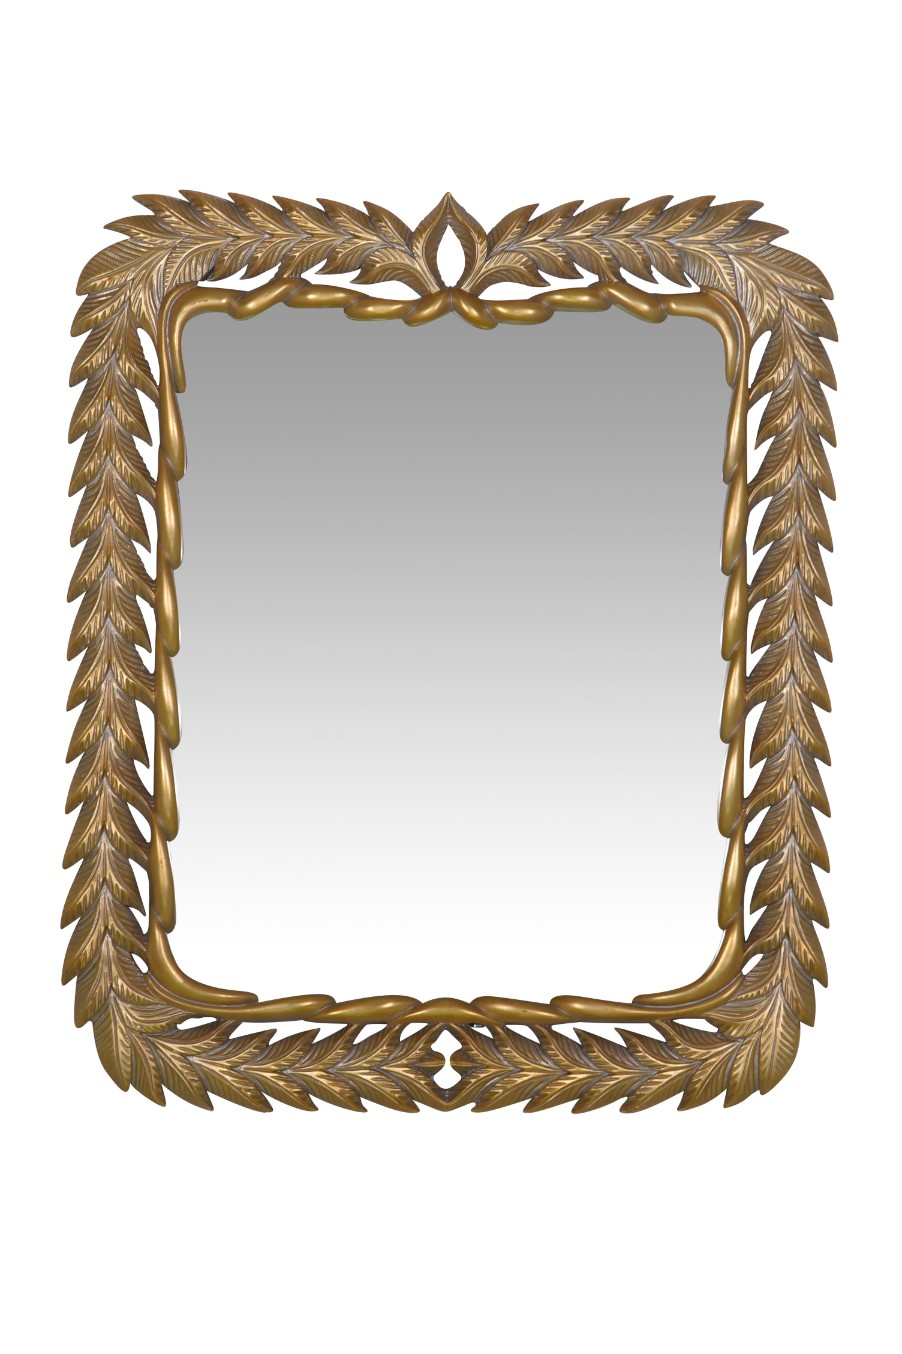 Capucine, French Style Gold Leaf Mirror